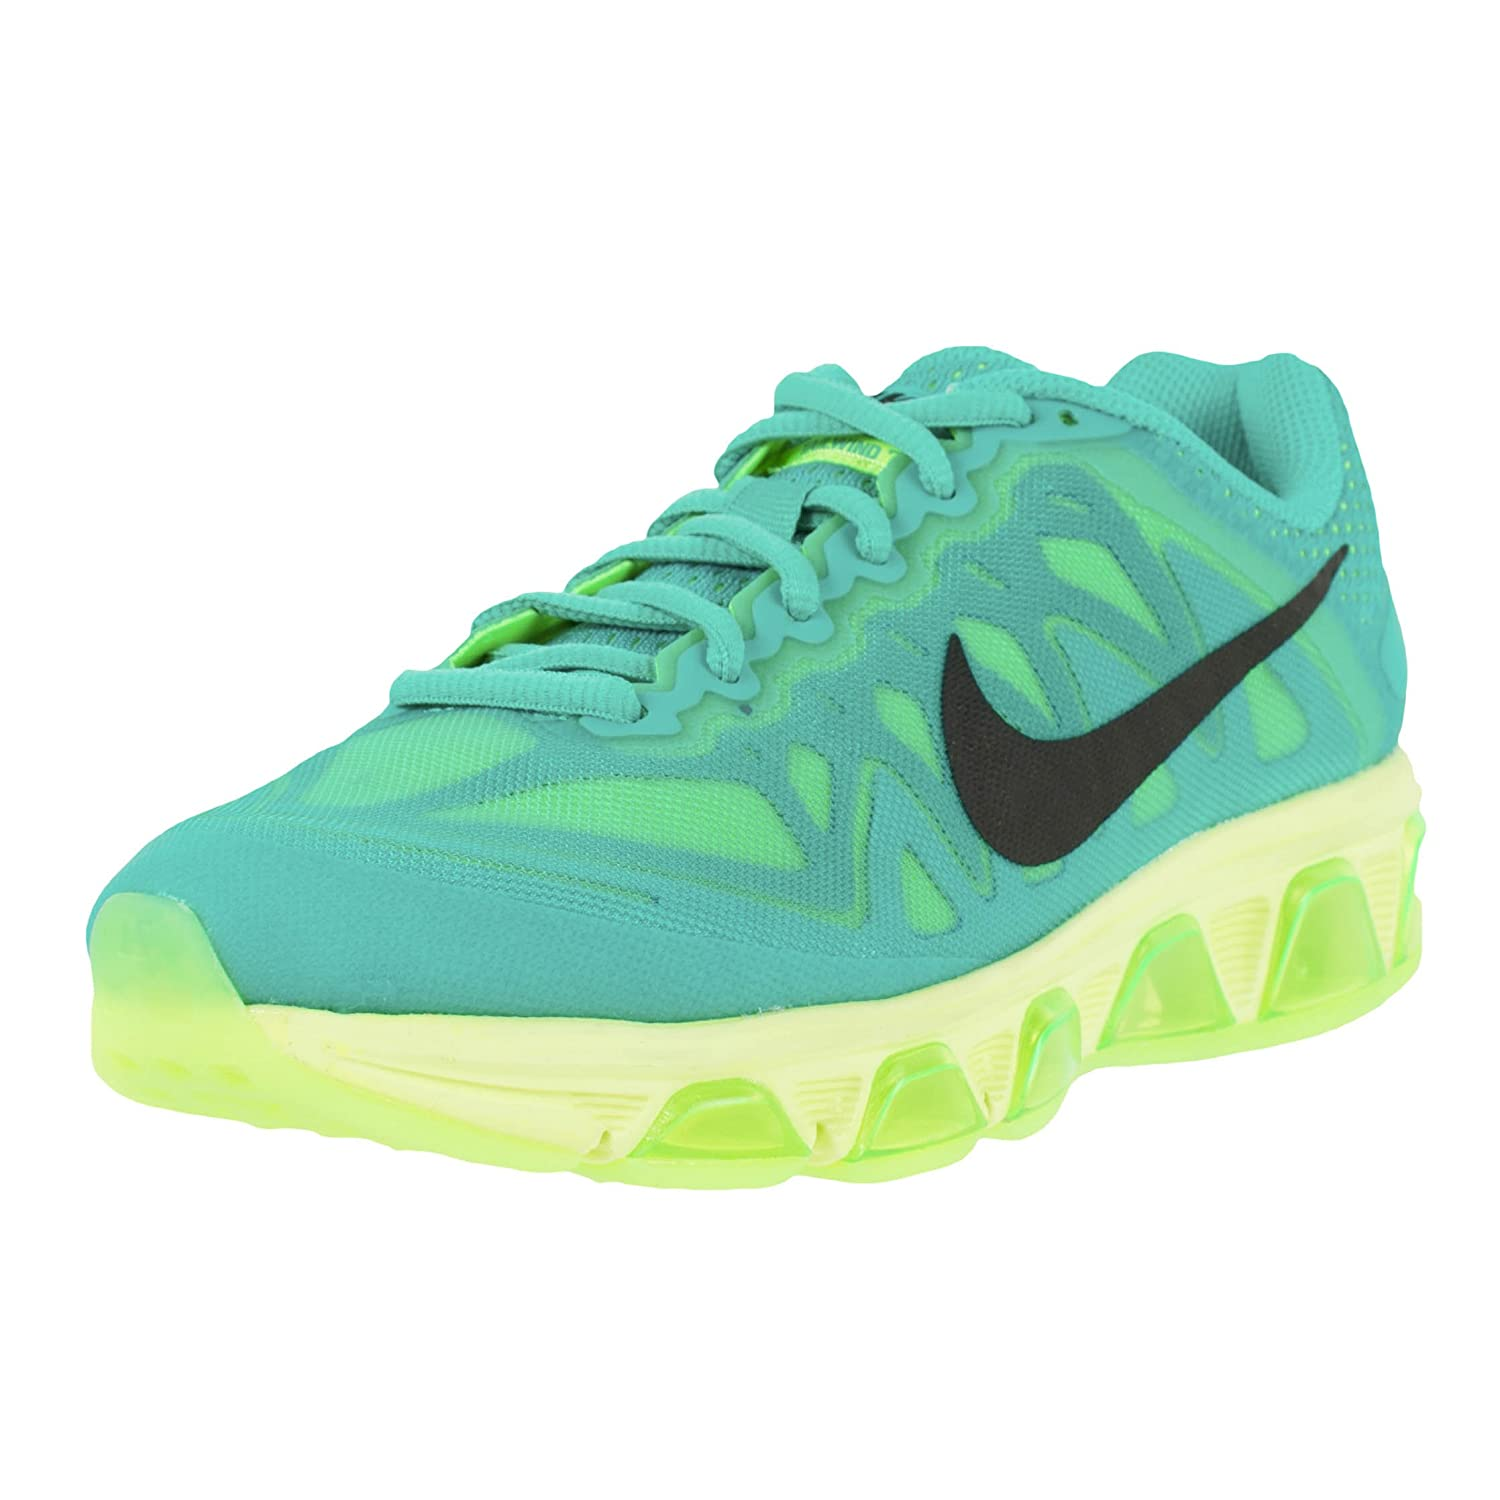 new concept 9d0f4 596ce Nike Womens AIR MAX Tailwind 7 Running Shoes Light Retro Black Lime  683635-400 (6 US)  Amazon.in  Shoes   Handbags